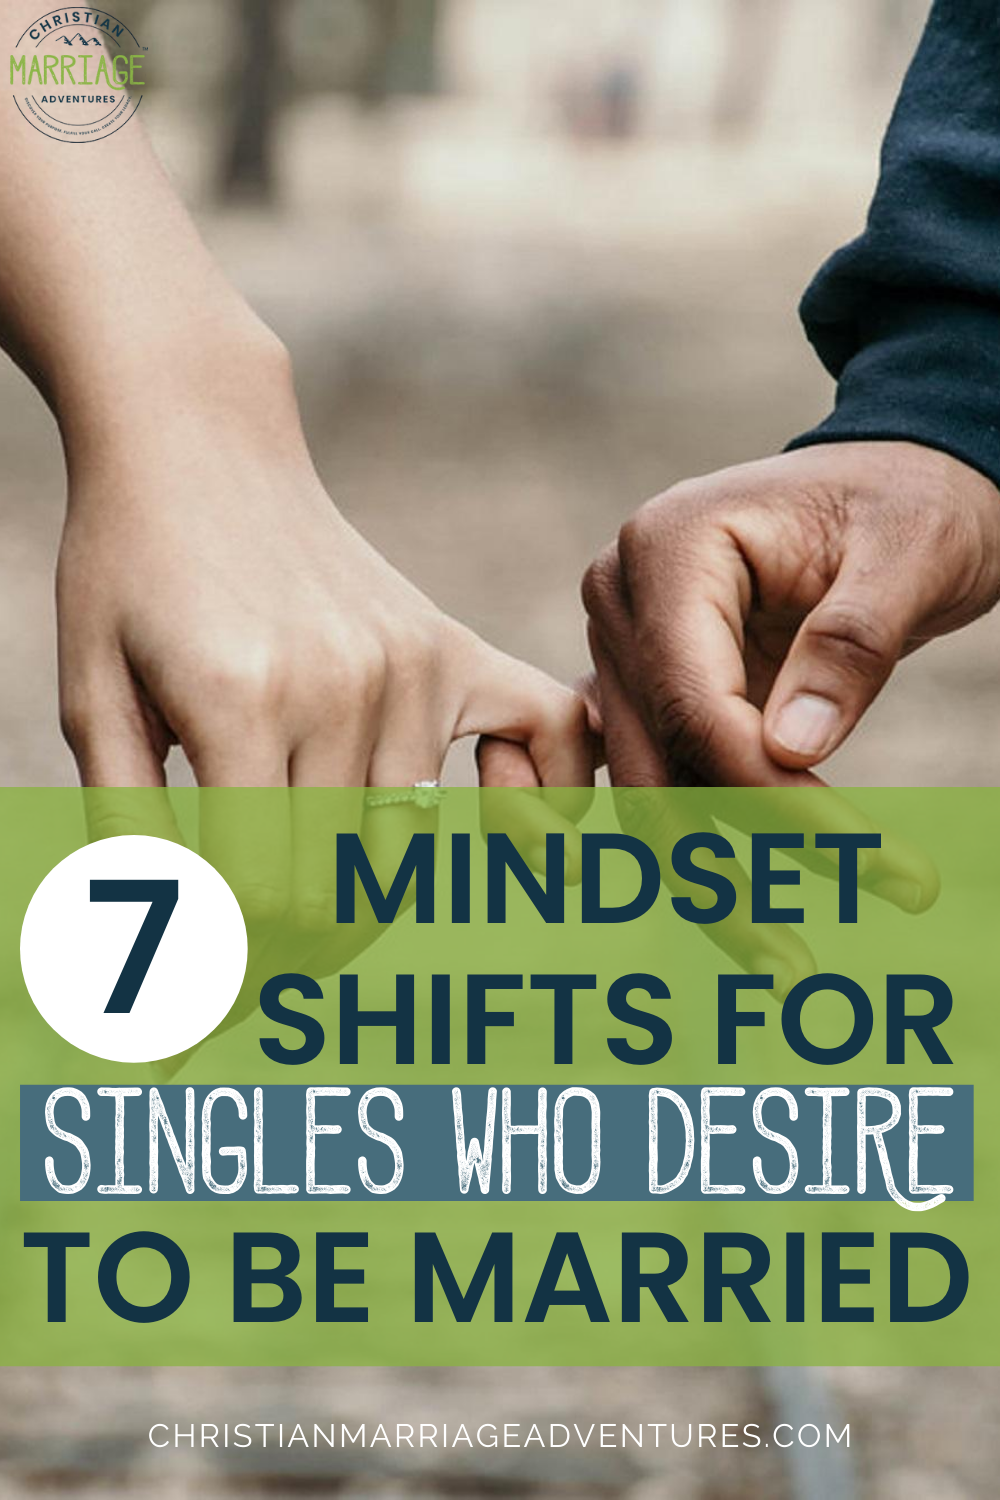 7 Mindset Shifts for Singles Who Desire to be Married